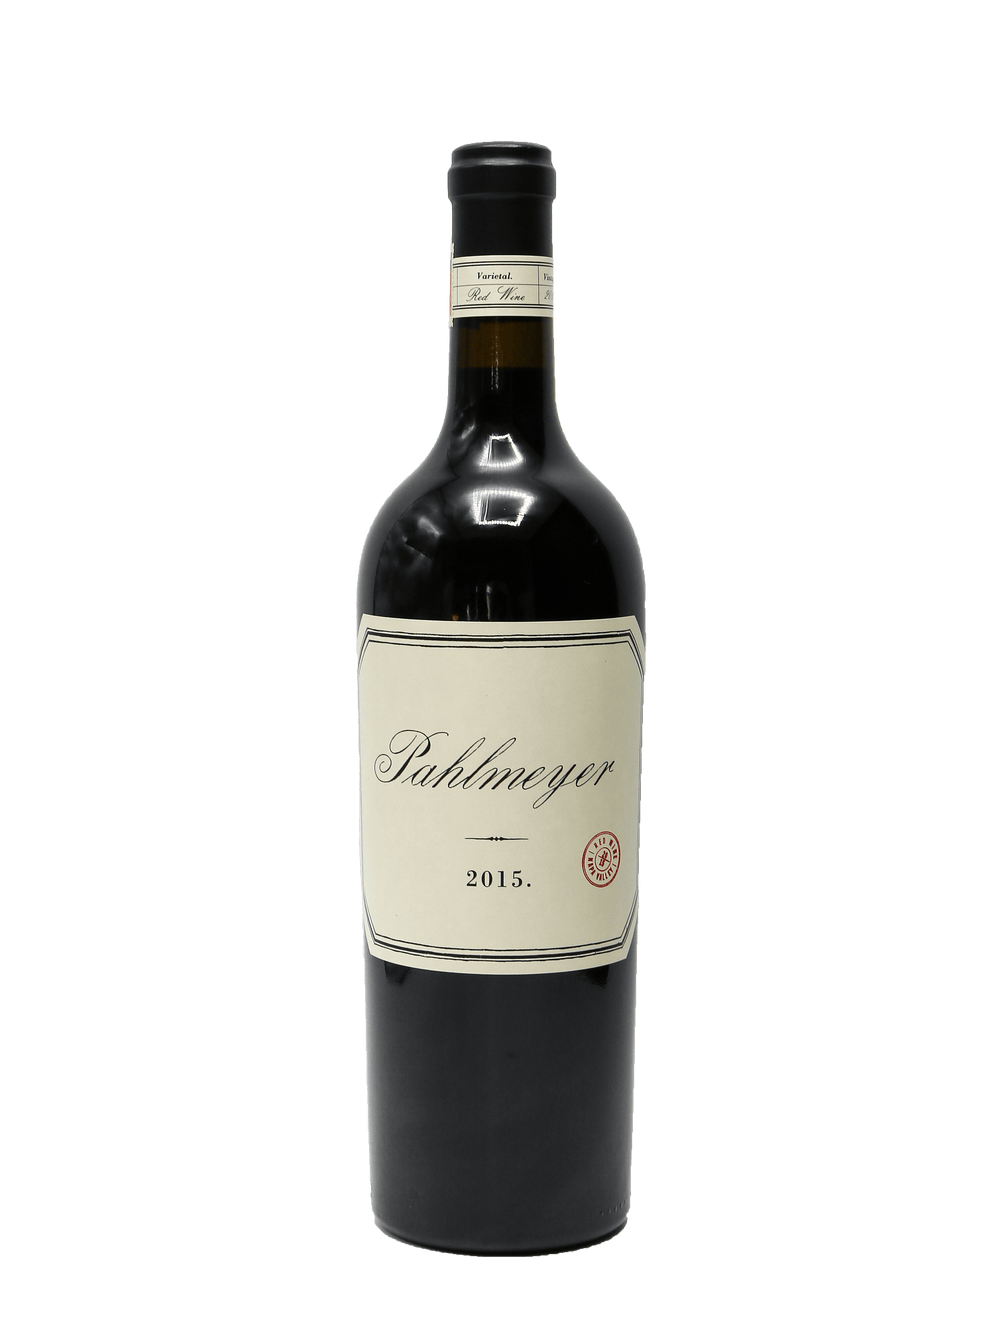 2015 Pahlmeyer Proprietary Red Wine